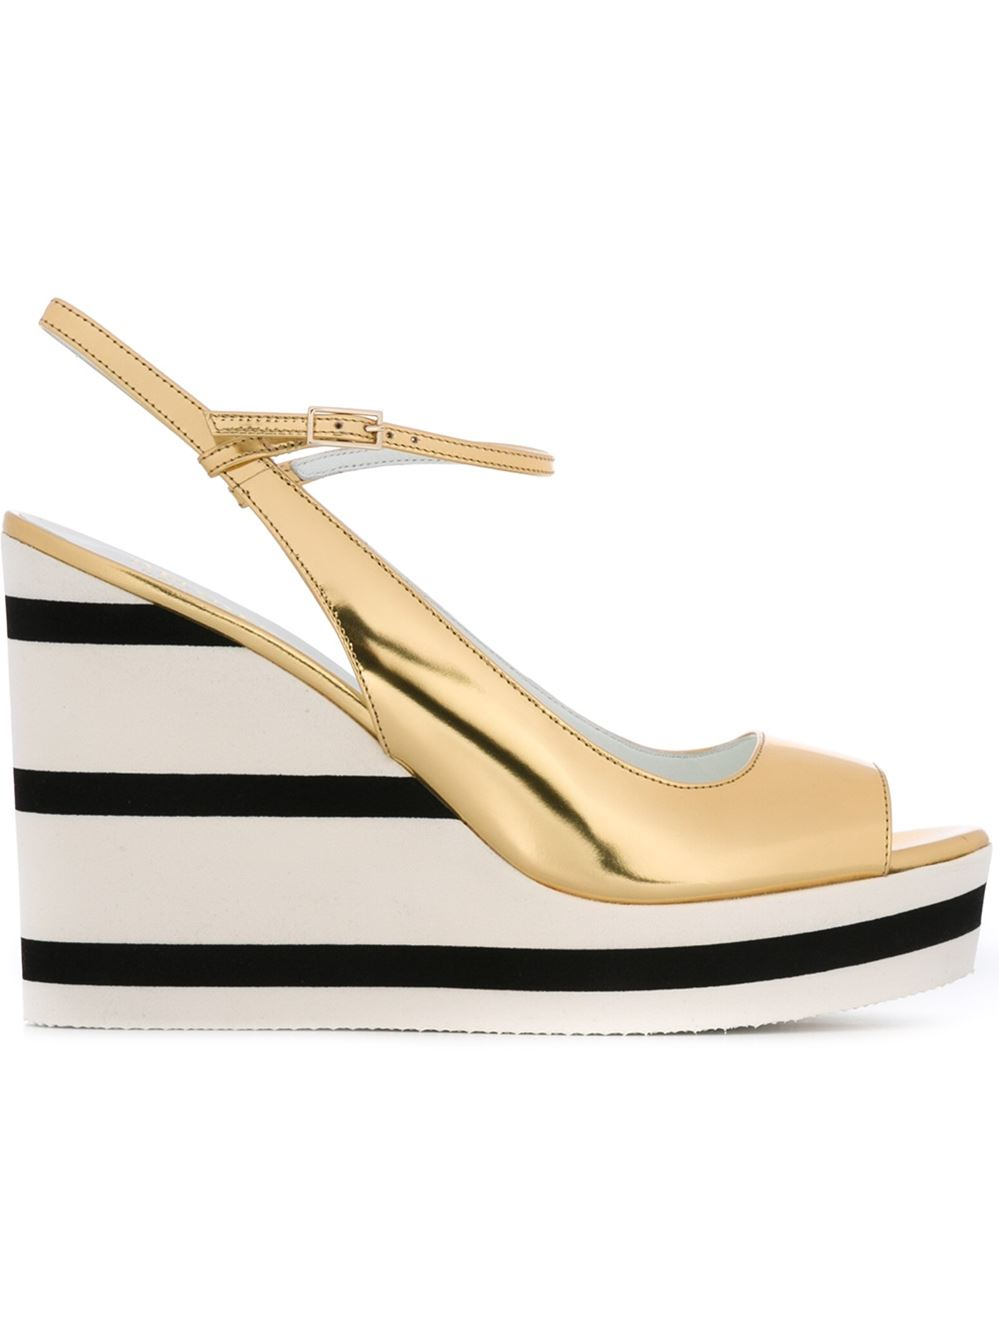 MAX MARA Wedges, FarFetch.com